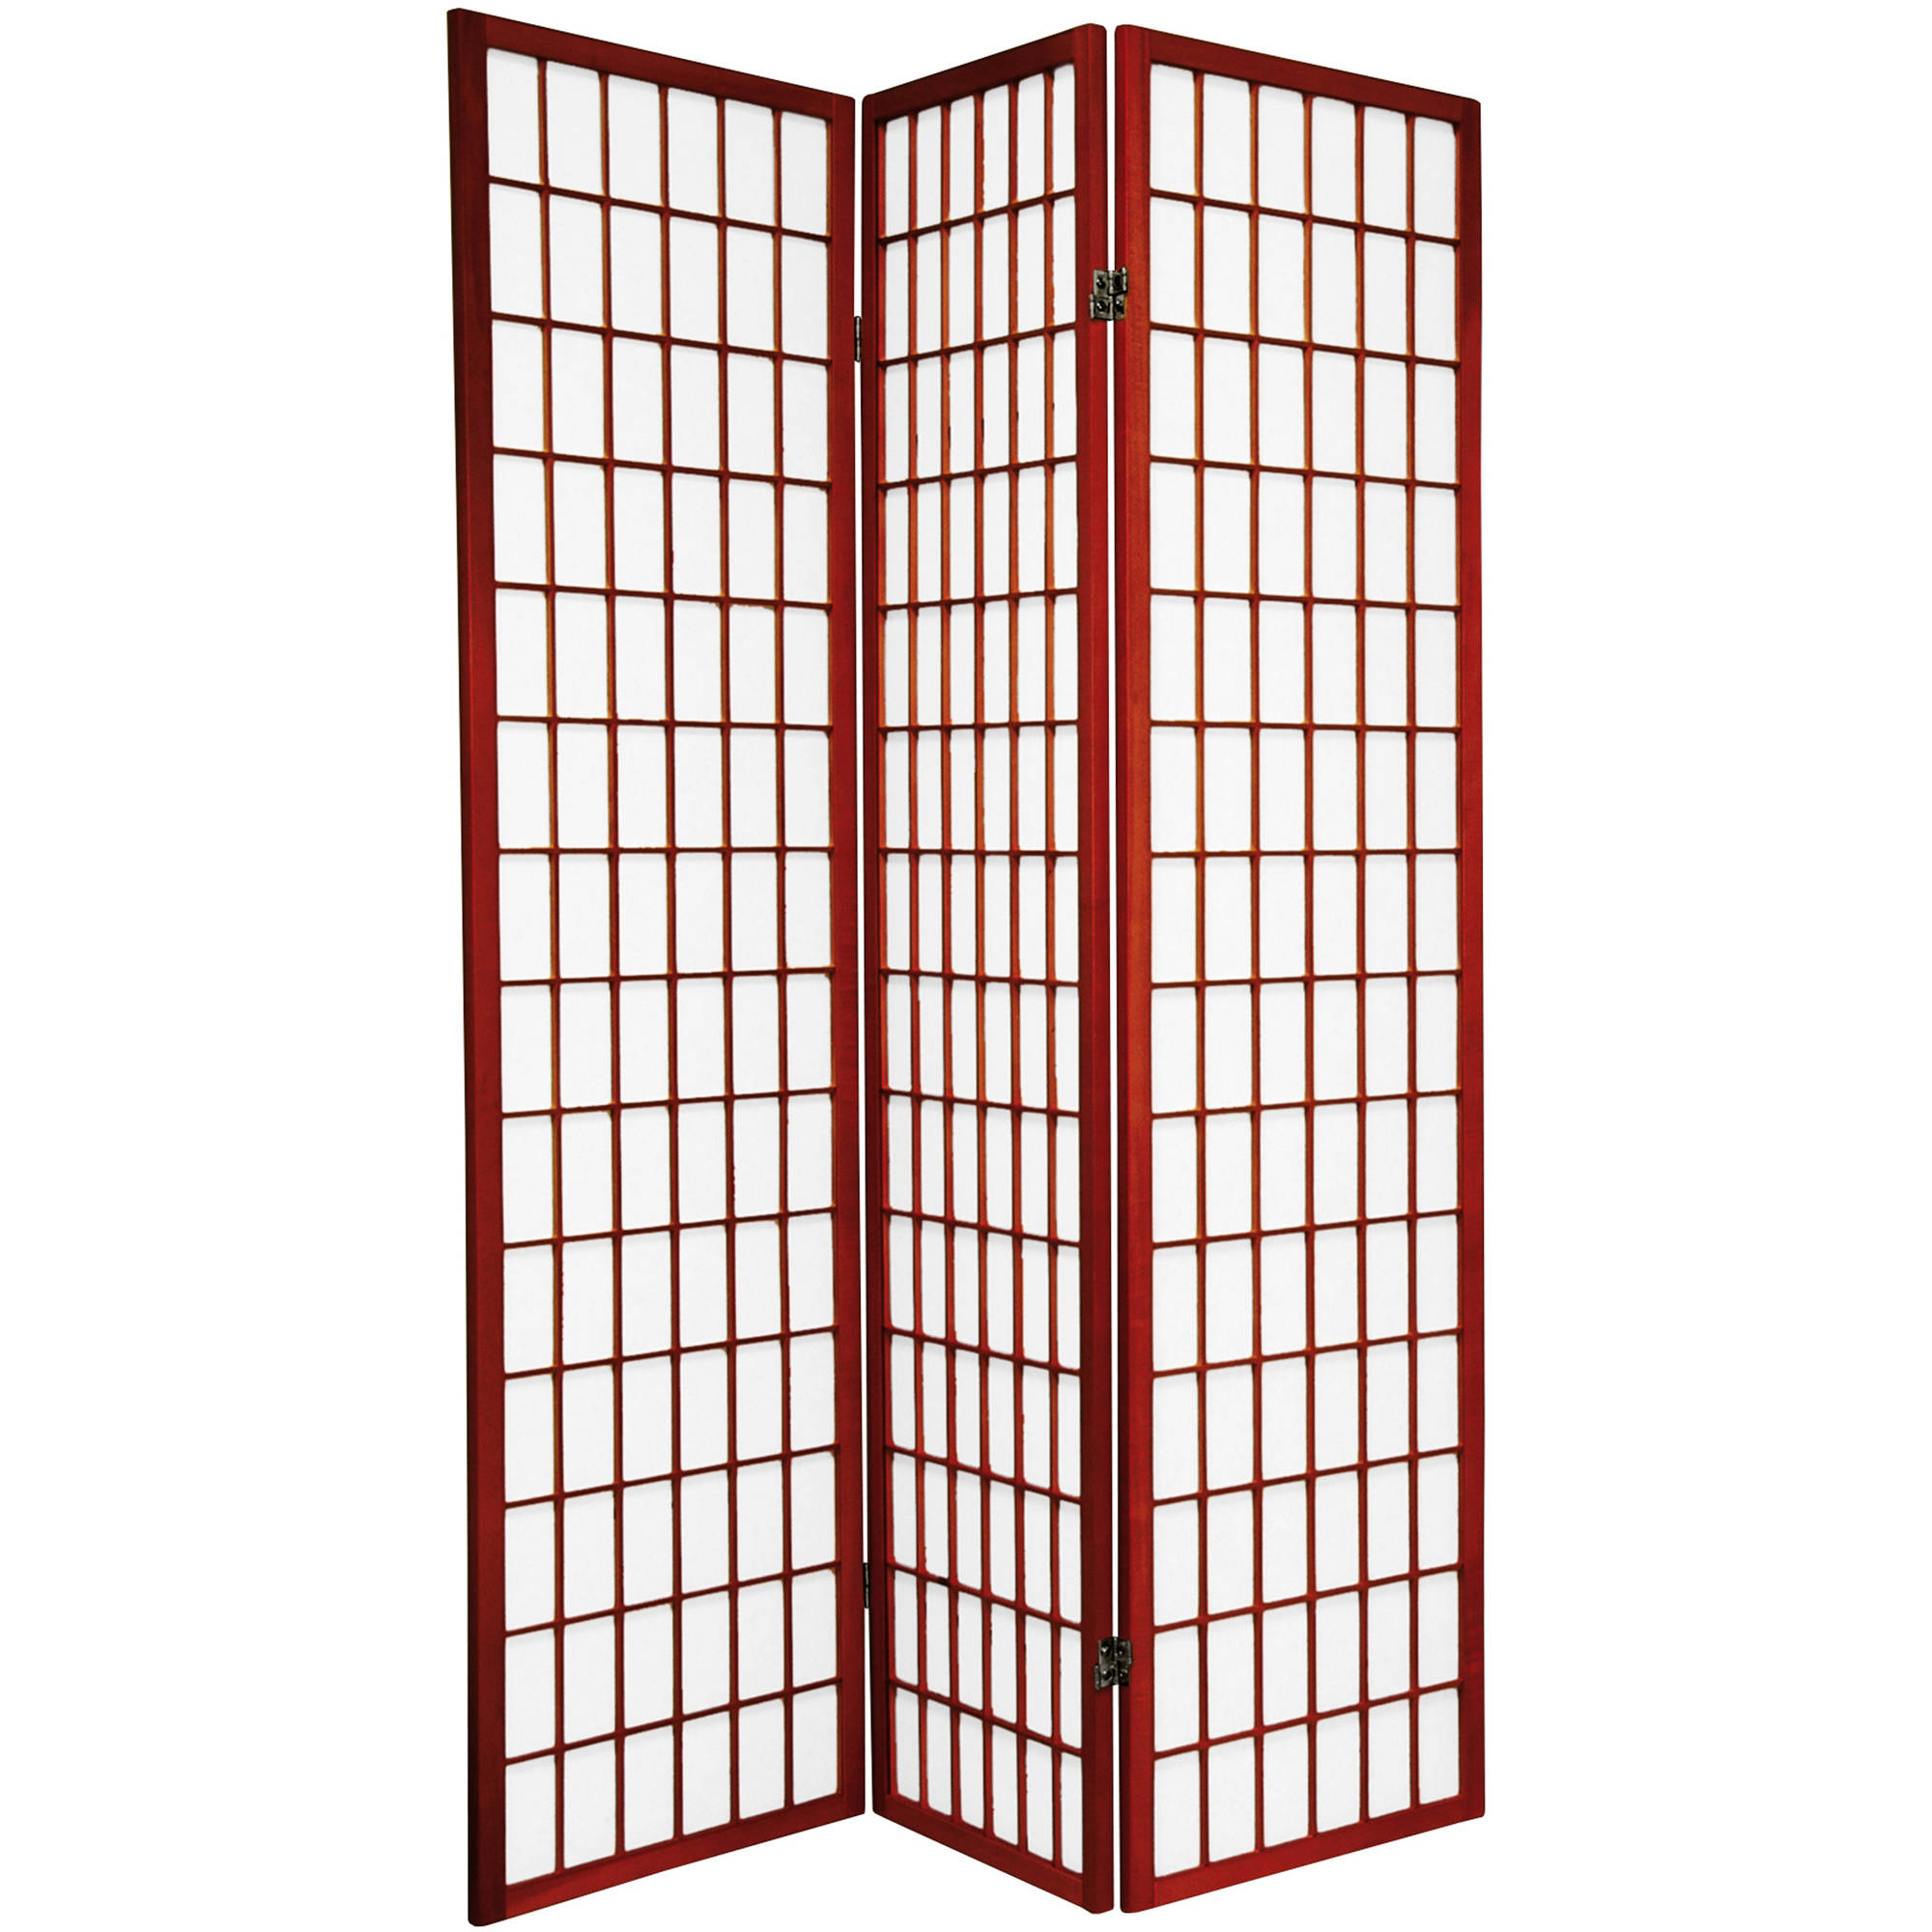 6' Tall Window Pane Shoji Screen